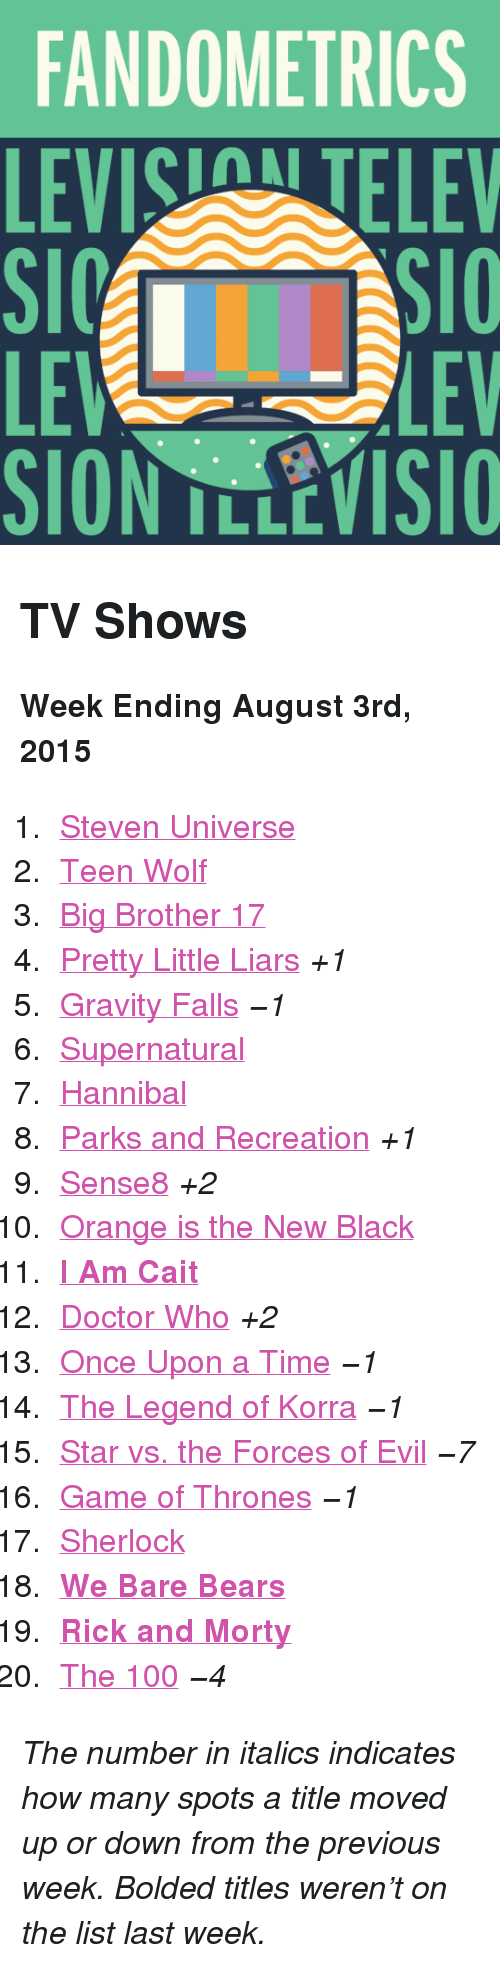 """Parks and Recreation: FANDOMETRICS  LEVIS TELEV  LE  SION TLLEVISIO  LEV <h2>TV Shows</h2><p><b>Week Ending August 3rd, 2015</b></p><ol><li><a href=""""http://www.tumblr.com/search/steven%20universe"""">Steven Universe</a></li>  <li><a href=""""http://www.tumblr.com/search/teen%20wolf"""">Teen Wolf</a></li>  <li><a href=""""http://www.tumblr.com/search/bb17"""">Big Brother 17</a></li>  <li><a href=""""http://www.tumblr.com/search/pretty%20little%20liars"""">Pretty Little Liars</a><i>+1</i></li>  <li><a href=""""http://www.tumblr.com/search/gravity%20falls"""">Gravity Falls</a><i>−1</i></li>  <li><a href=""""http://www.tumblr.com/search/supernatural"""">Supernatural</a></li>  <li><a href=""""http://www.tumblr.com/search/hannibal"""">Hannibal</a></li>  <li><a href=""""http://www.tumblr.com/search/parks%20and%20recreation"""">Parks and Recreation</a><i>+1</i></li>  <li><a href=""""http://www.tumblr.com/search/sense8"""">Sense8</a><i>+2</i></li>  <li><a href=""""http://www.tumblr.com/search/oitnb"""">Orange is the New Black</a></li>  <li><a href=""""http://www.tumblr.com/search/i%20am%20cait""""><b>I Am Cait</b></a></li>  <li><a href=""""http://www.tumblr.com/search/doctor%20who"""">Doctor Who</a><i>+2</i></li>  <li><a href=""""http://www.tumblr.com/search/ouat"""">Once Upon a Time</a><i>−1</i></li>  <li><a href=""""http://www.tumblr.com/search/legend%20of%20korra"""">The Legend of Korra</a><i>−1</i></li>  <li><a href=""""http://www.tumblr.com/search/star%20vs%20the%20forces%20of%20evil"""">Star vs. the Forces of Evil</a><i>−7</i></li>  <li><a href=""""http://www.tumblr.com/search/game%20of%20thrones"""">Game of Thrones</a><i>−1</i></li>  <li><a href=""""http://www.tumblr.com/search/sherlock"""">Sherlock</a></li>  <li><a href=""""http://www.tumblr.com/search/we%20bare%20bears""""><b>We Bare Bears</b></a></li>  <li><a href=""""http://www.tumblr.com/search/rick%20and%20morty""""><b>Rick and Morty</b></a></li>  <li><a href=""""http://www.tumblr.com/search/the%20100"""">The 100</a><i>−4</i></li></ol><p><i>The number in italics indicates how many spots a title moved up or down from the previo"""